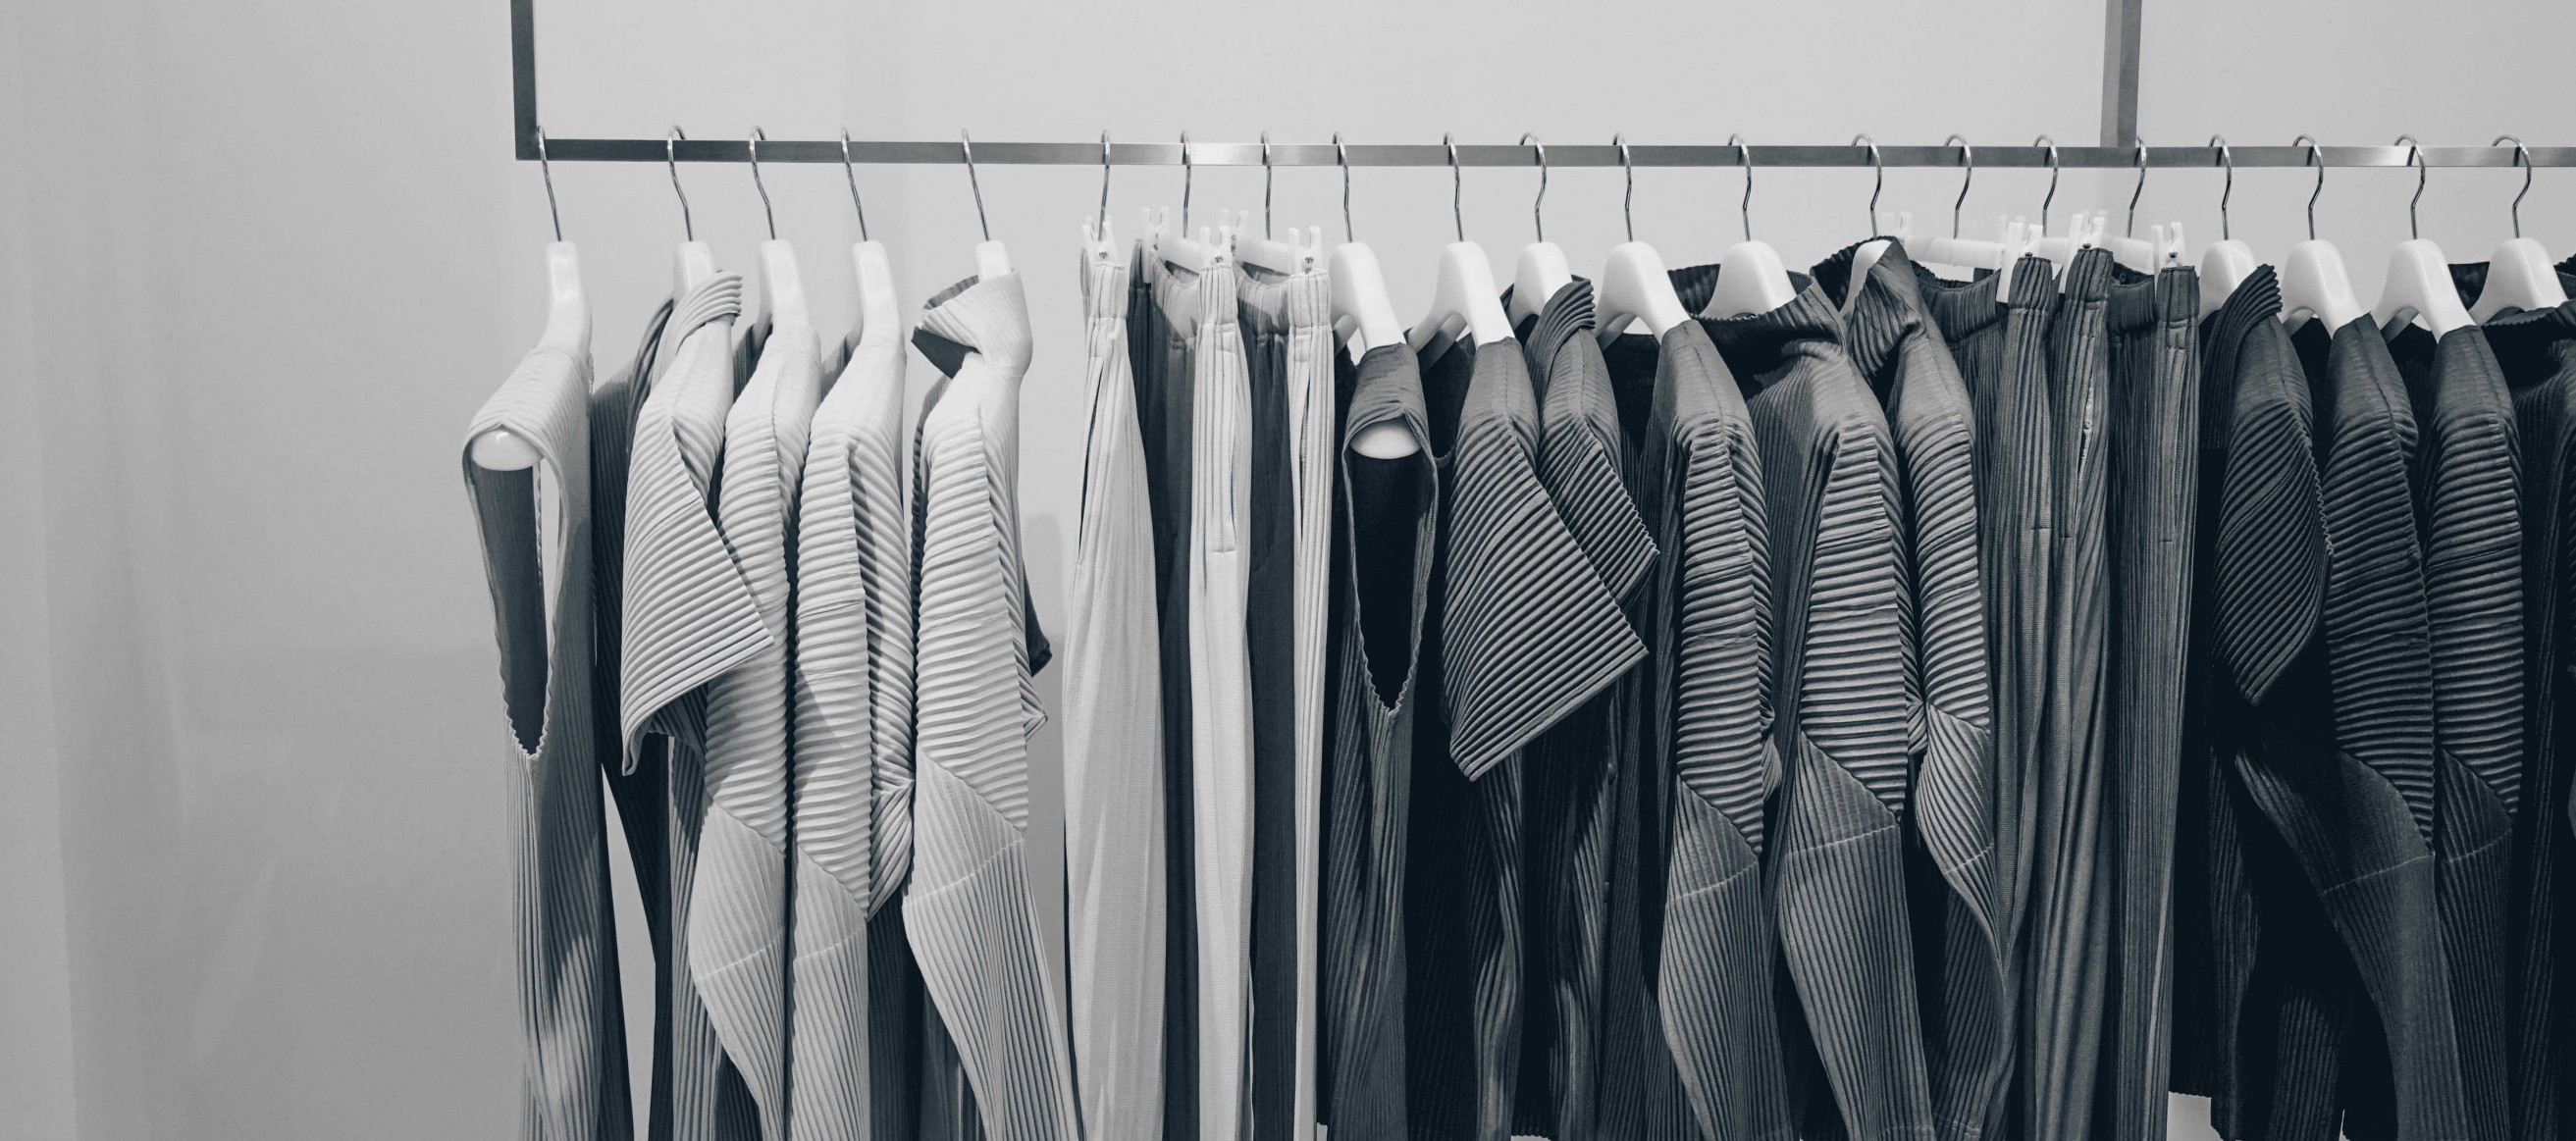 Classifying clothes using Tensorflow (Fashion MNIST)